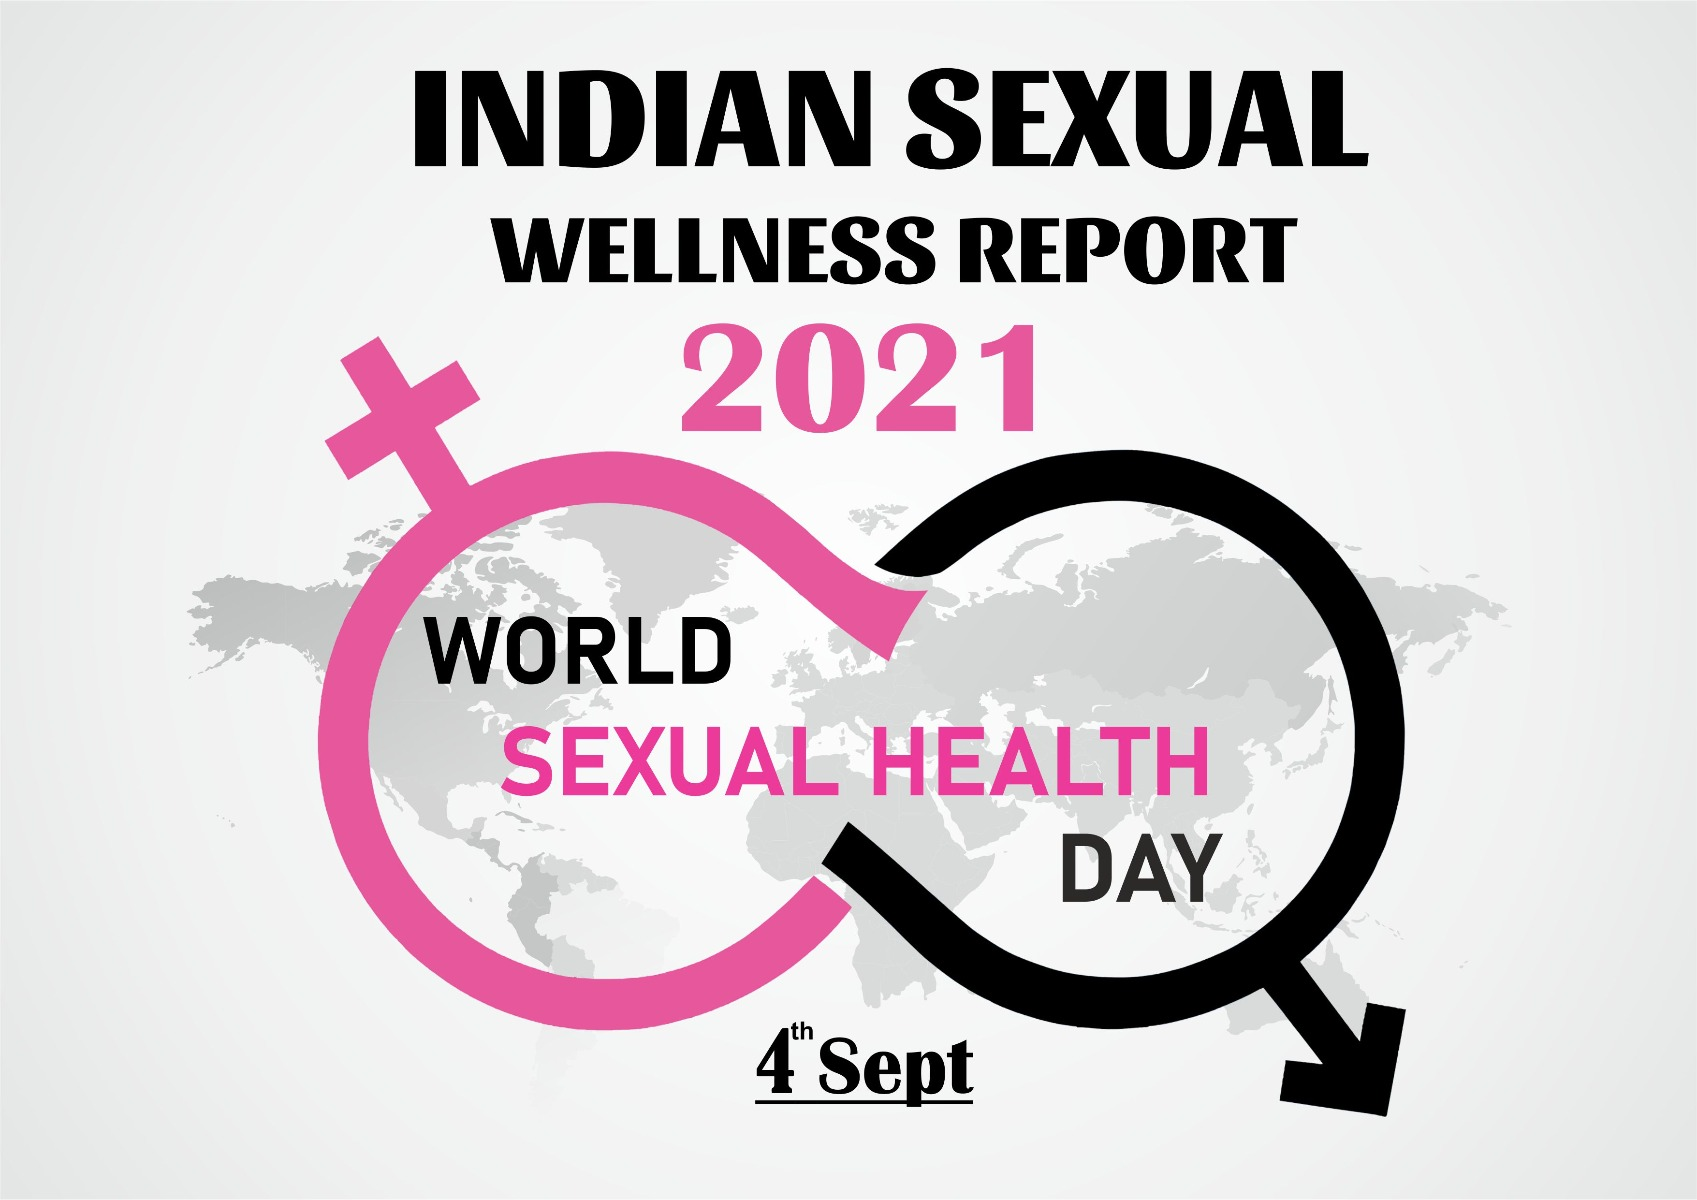 world sexual health day-1